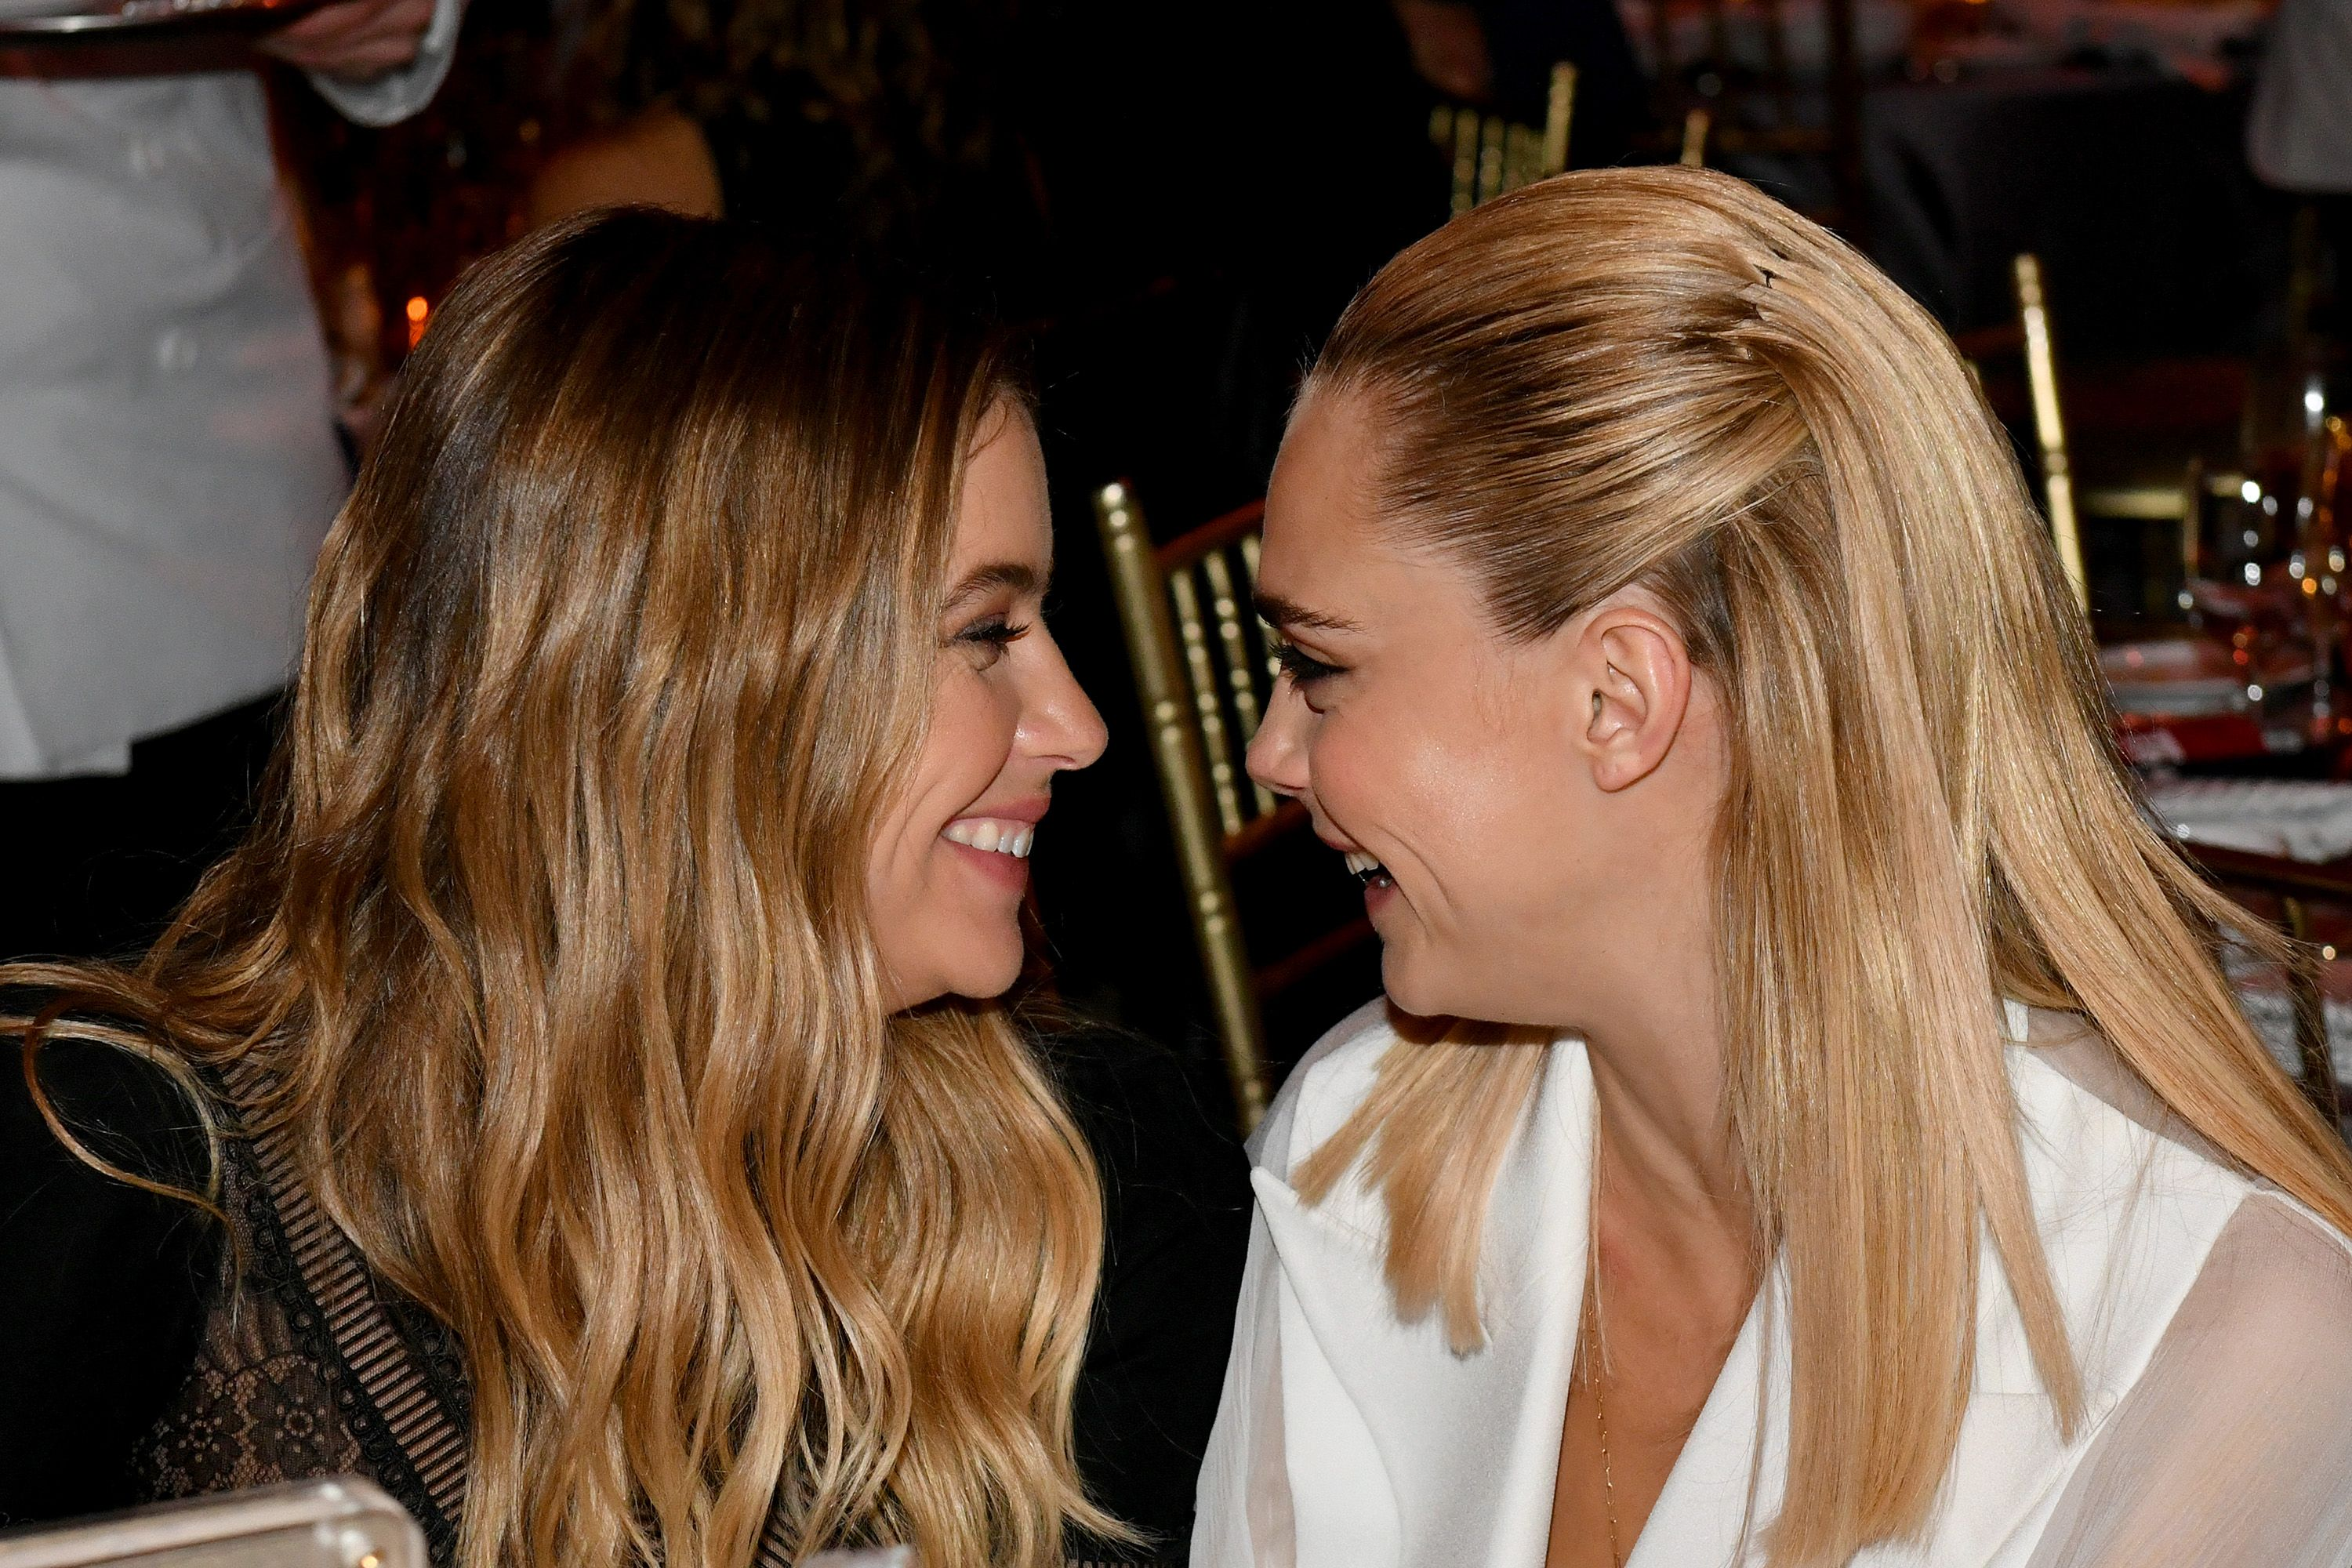 Cara Delevingne On How She And Girlfriend Ashley Benson Fell In Love